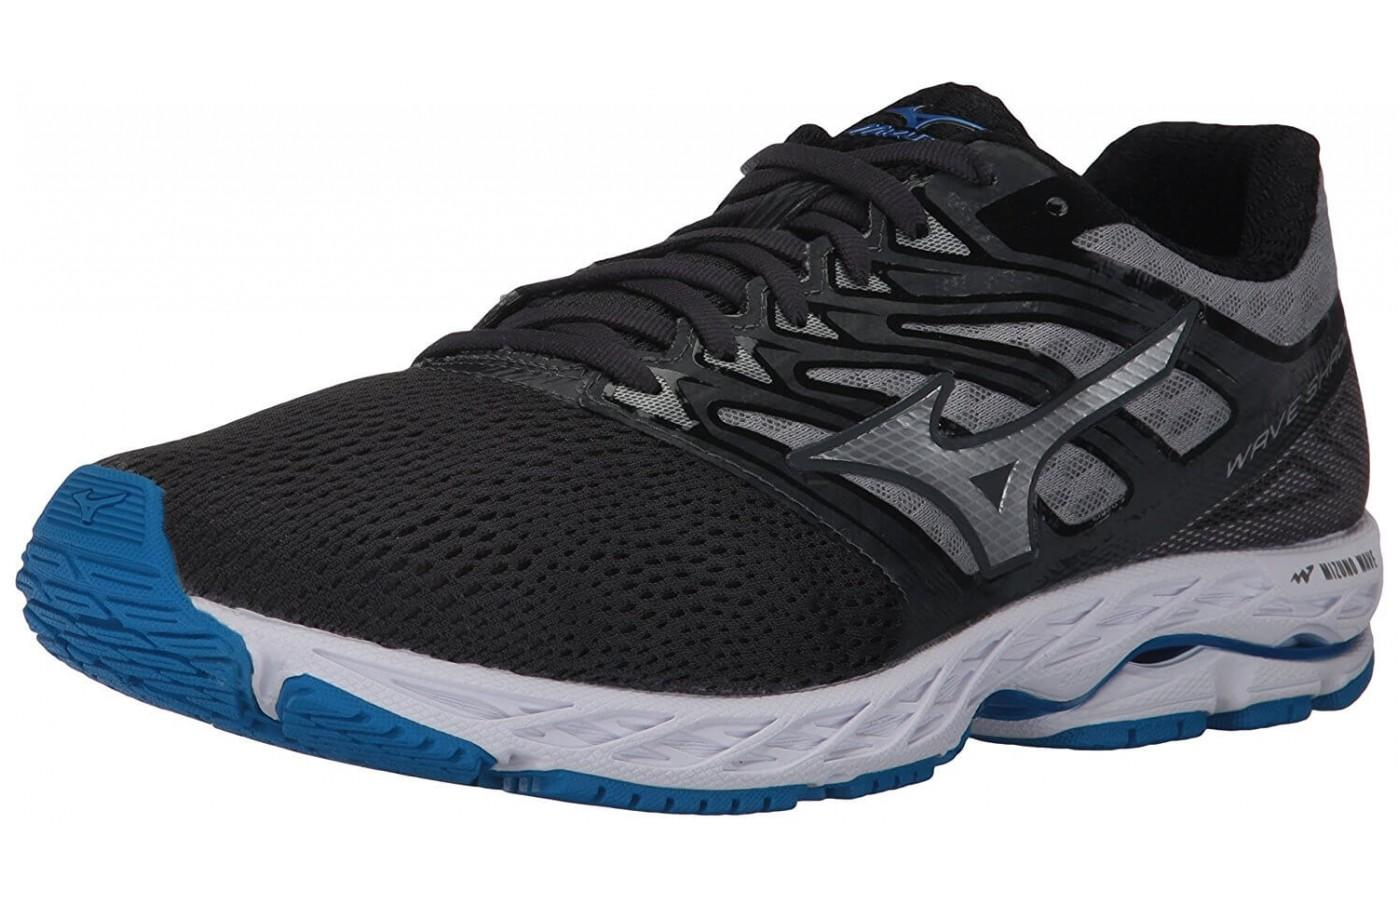 17b24a3714da mizuno custom shoes on sale > OFF36% Discounts